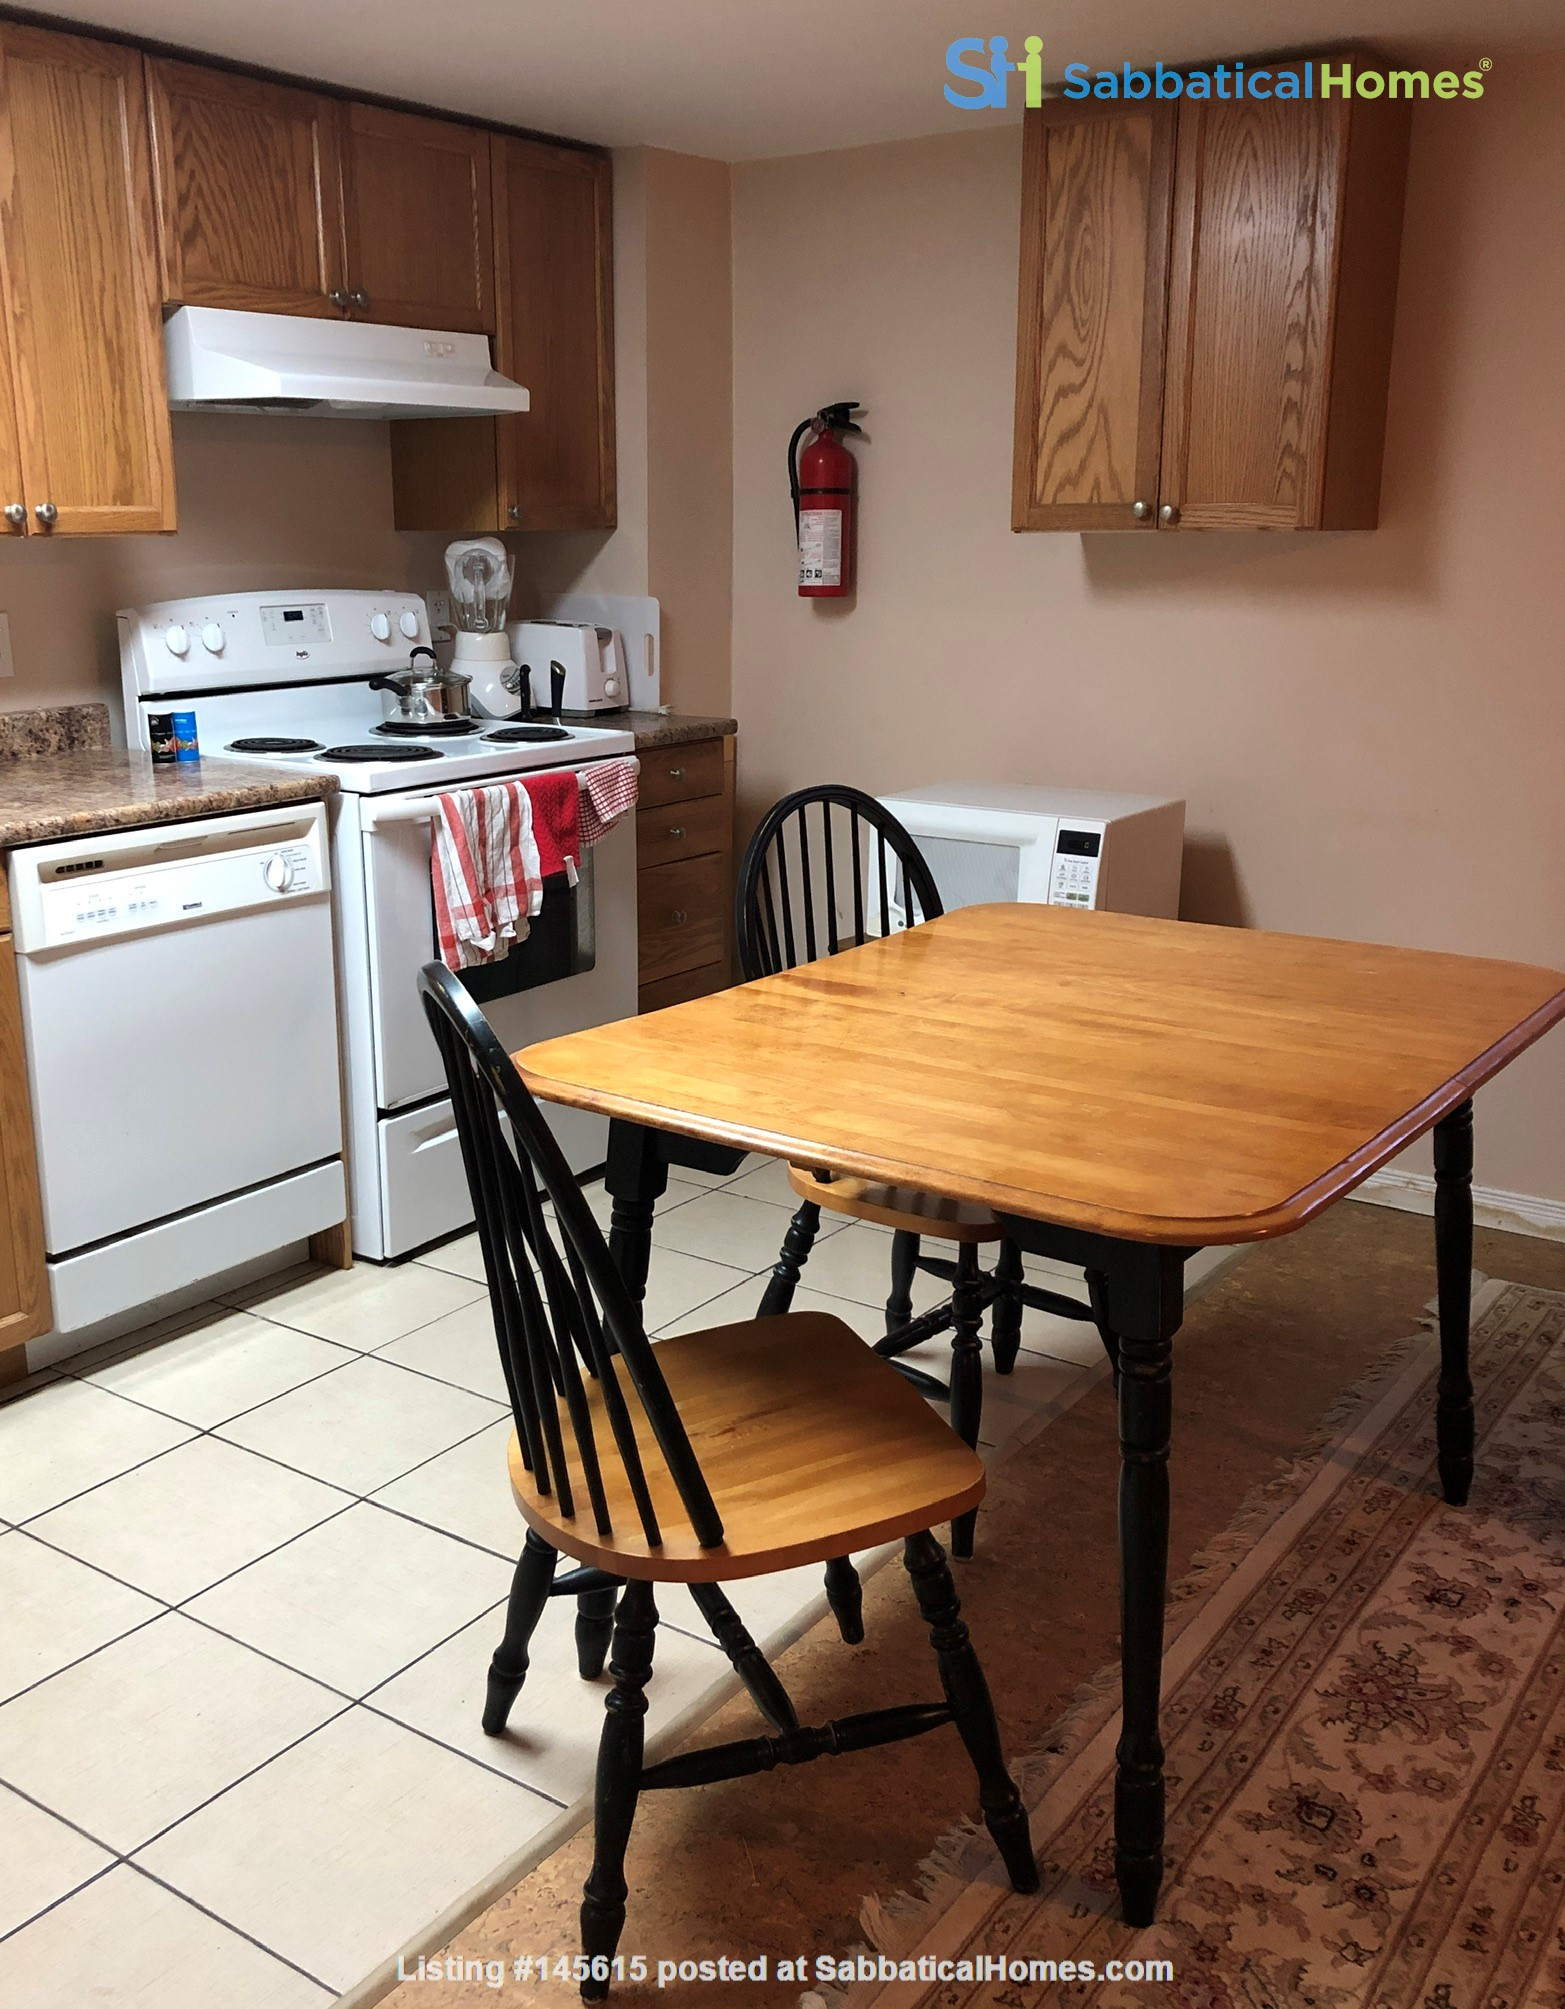 Apartment in quiet bungalow, 10 minutes walk to U of Guelph campus. Home Rental in Guelph, Ontario, Canada 4